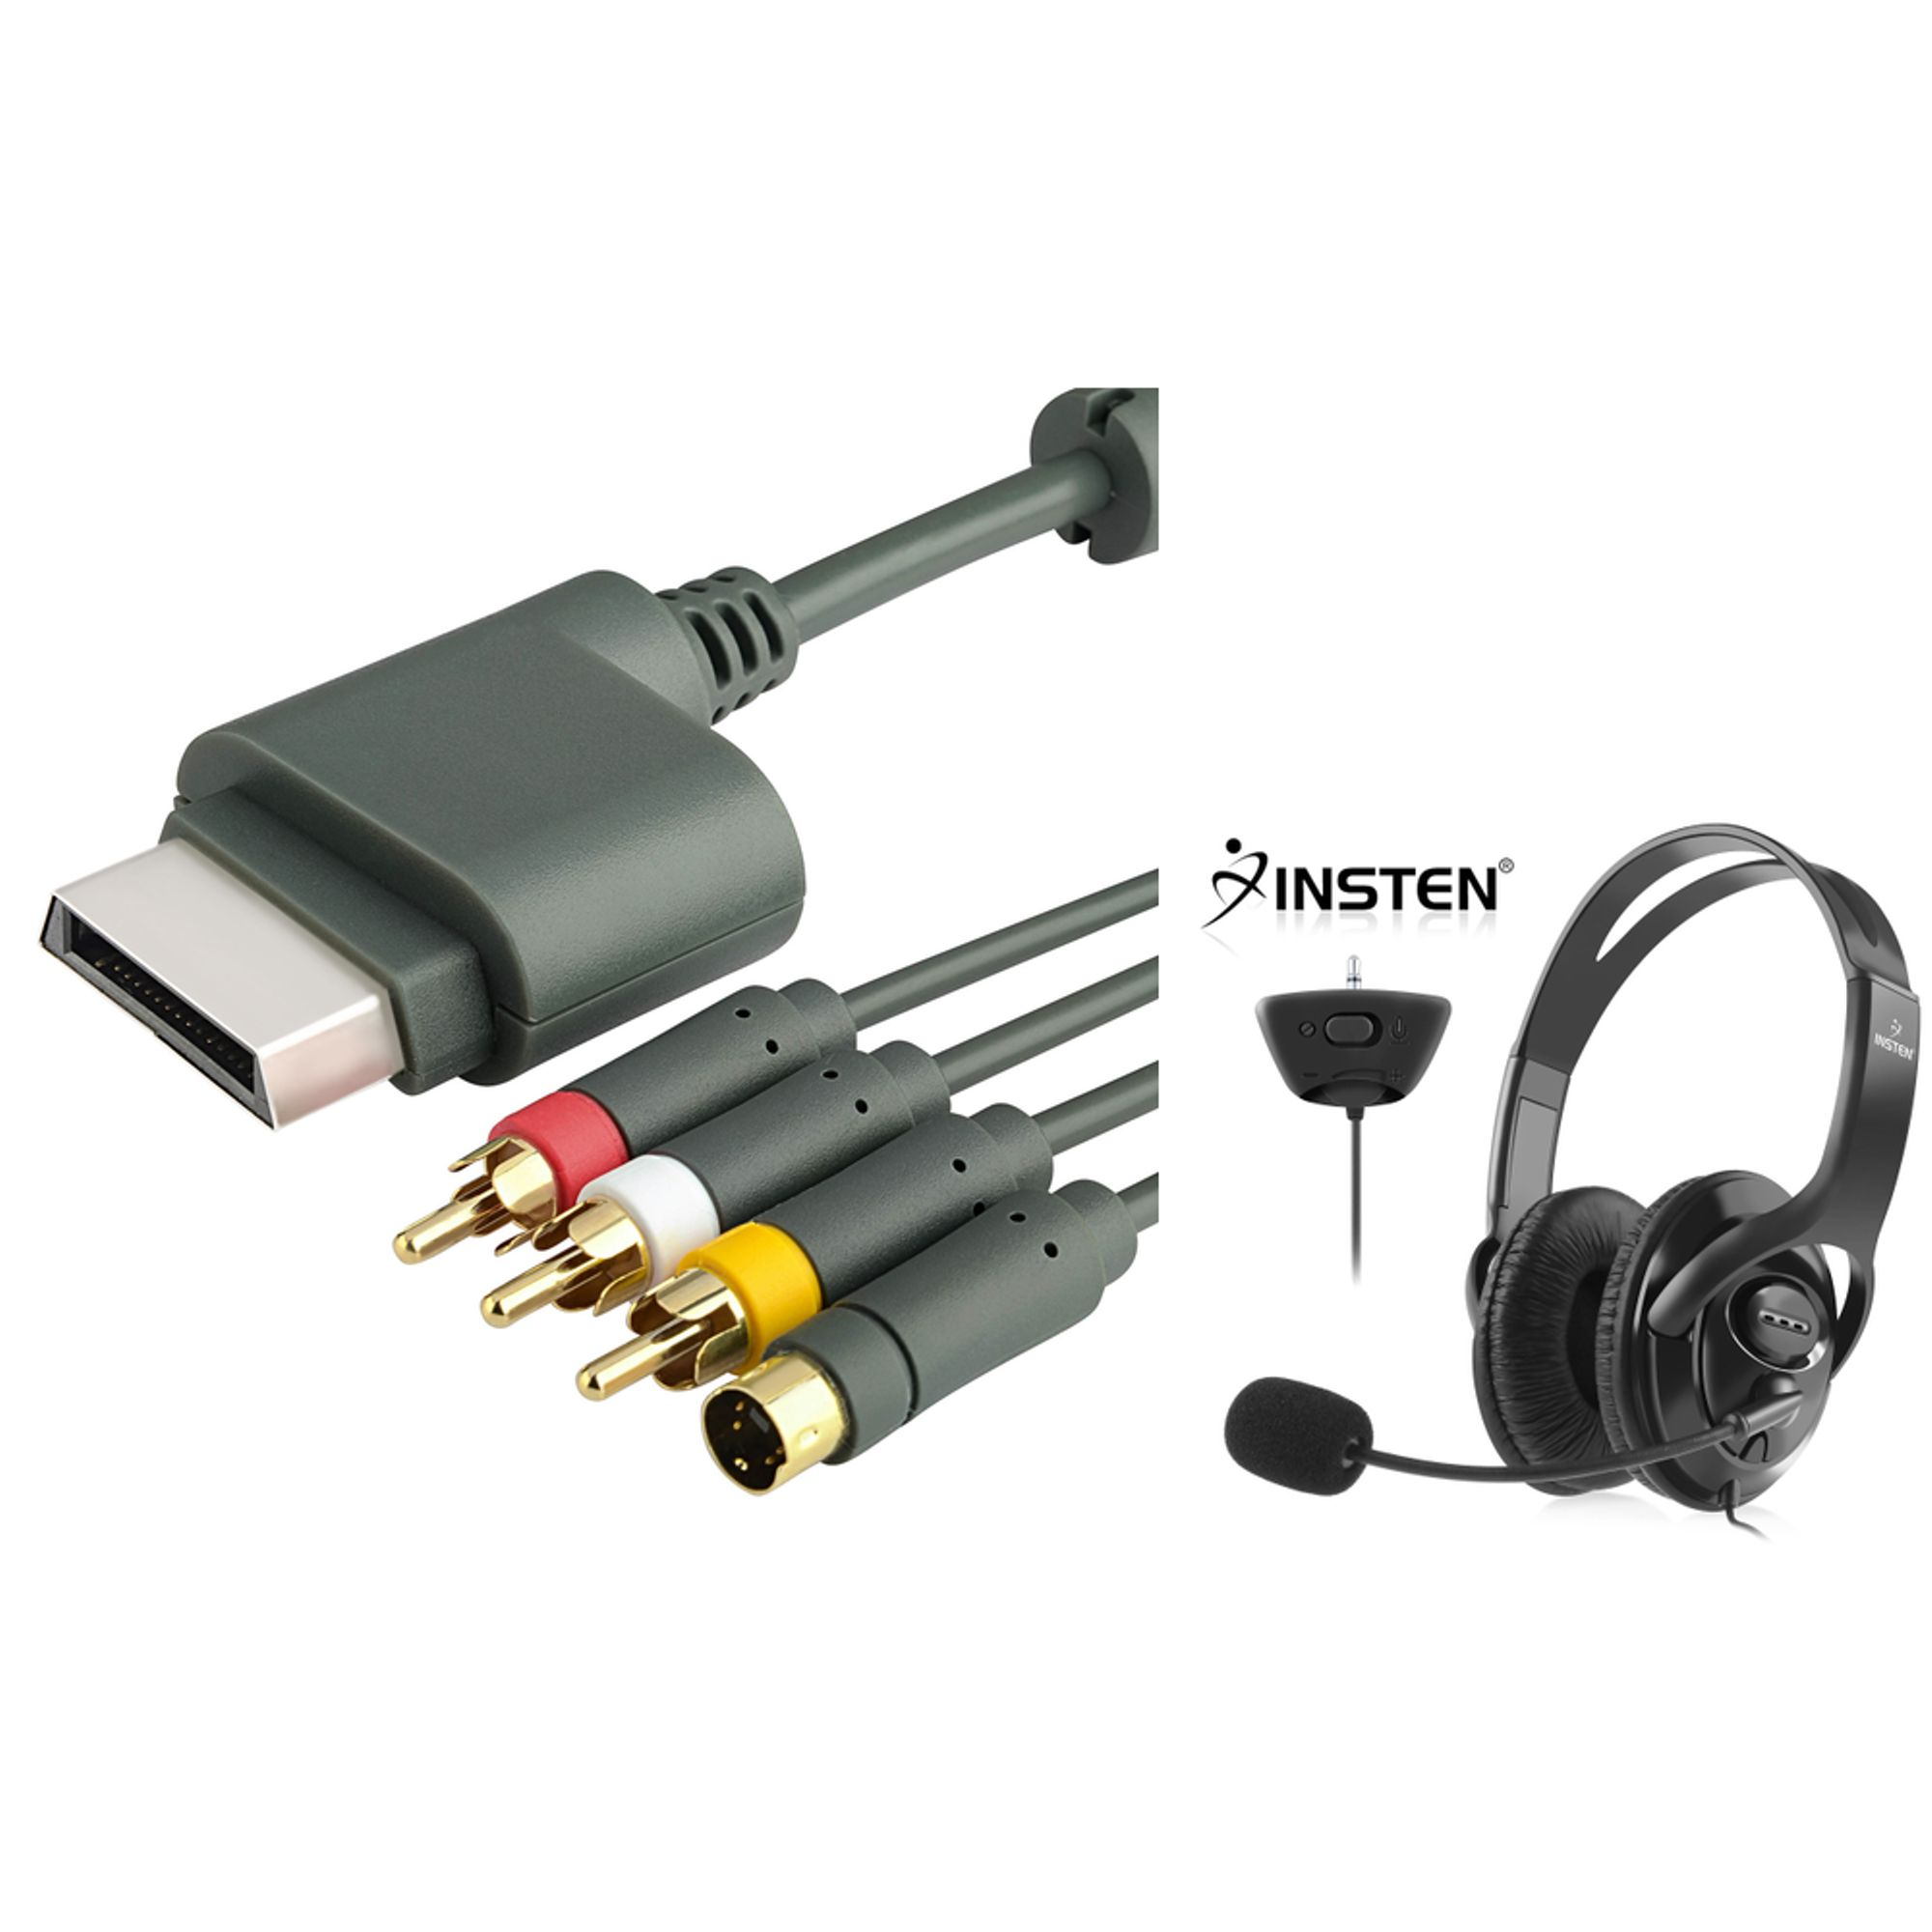 Xbox 360 Headset with Mic by Insten For Xbox 360 / Xbox 360 Slim - Black Gaming Headset with Noise Canceling Mic Microphone + S-Video AV Cable